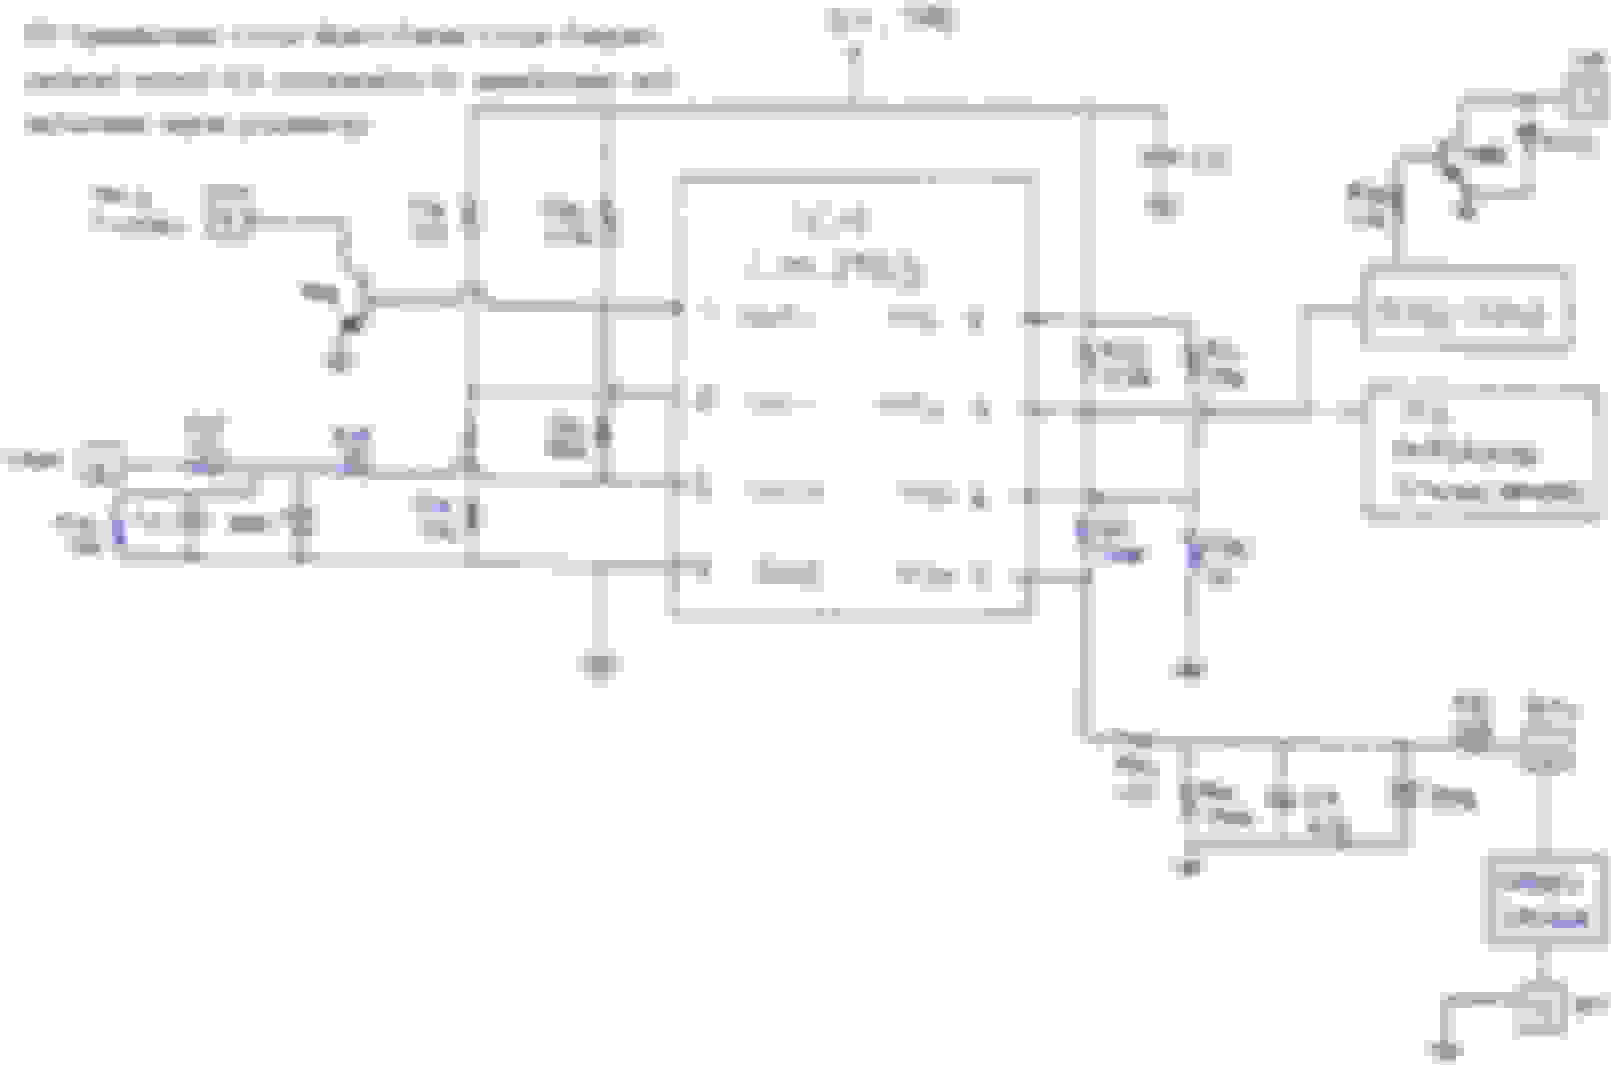 1995 Rx7 Ecu Wiring Diagram